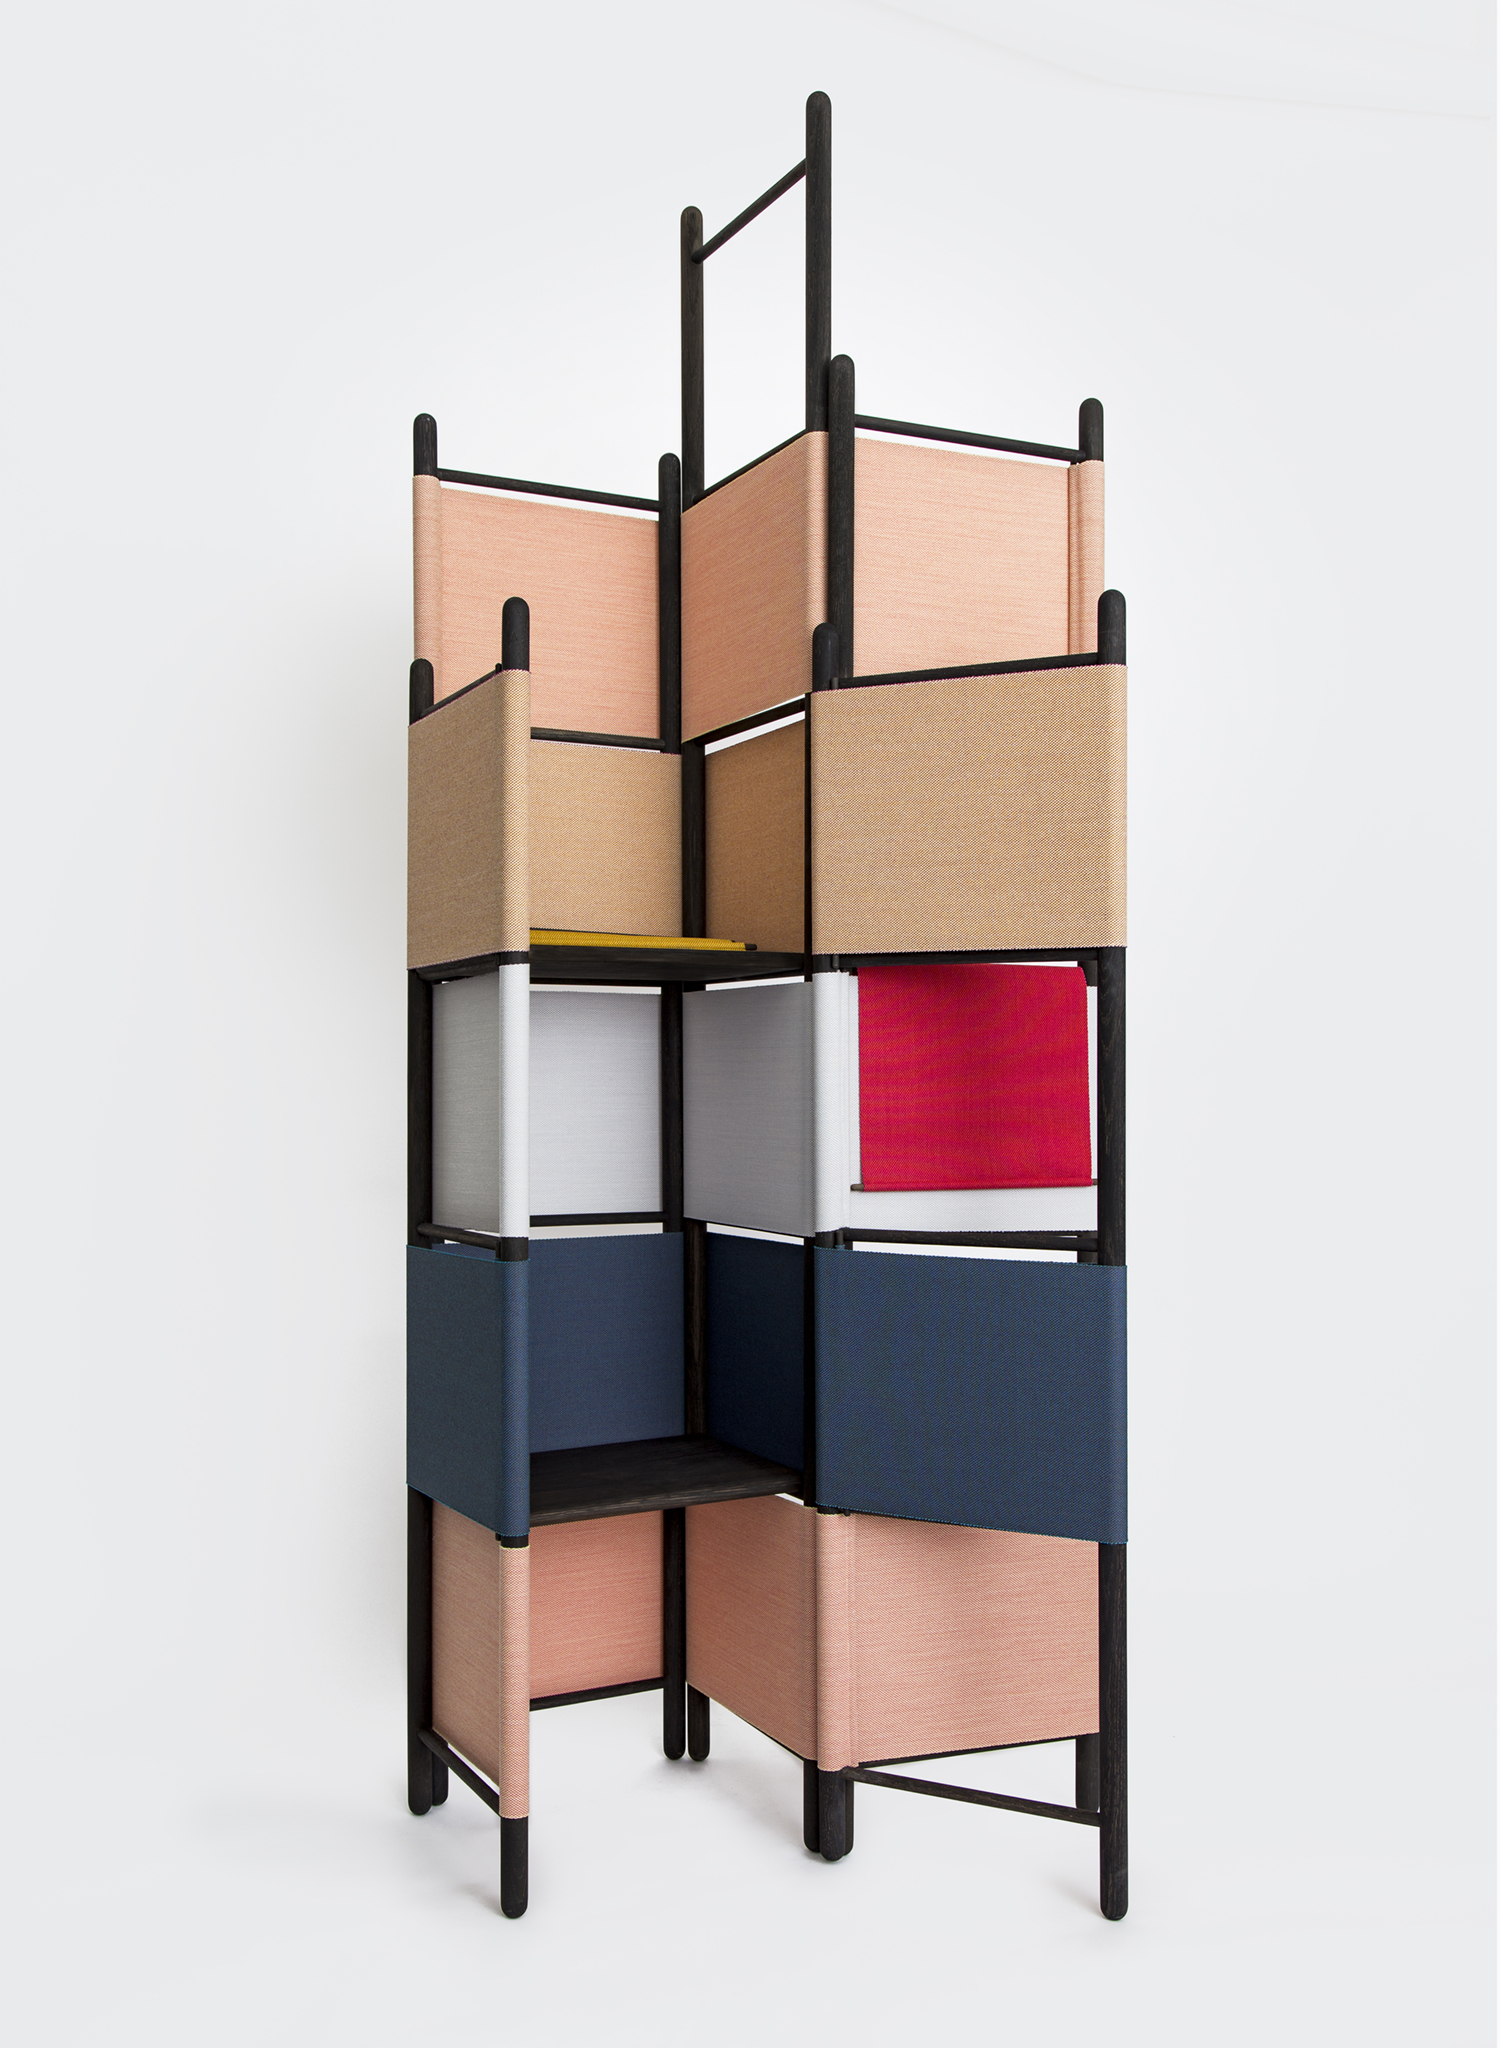 A special 'De Stijl' edition of Loom Bound by Rive Roshan, specially made for the Aram Gallery in Covent Garden, London. An homage to Gerrit Rietveld and Theo van Doesburg.